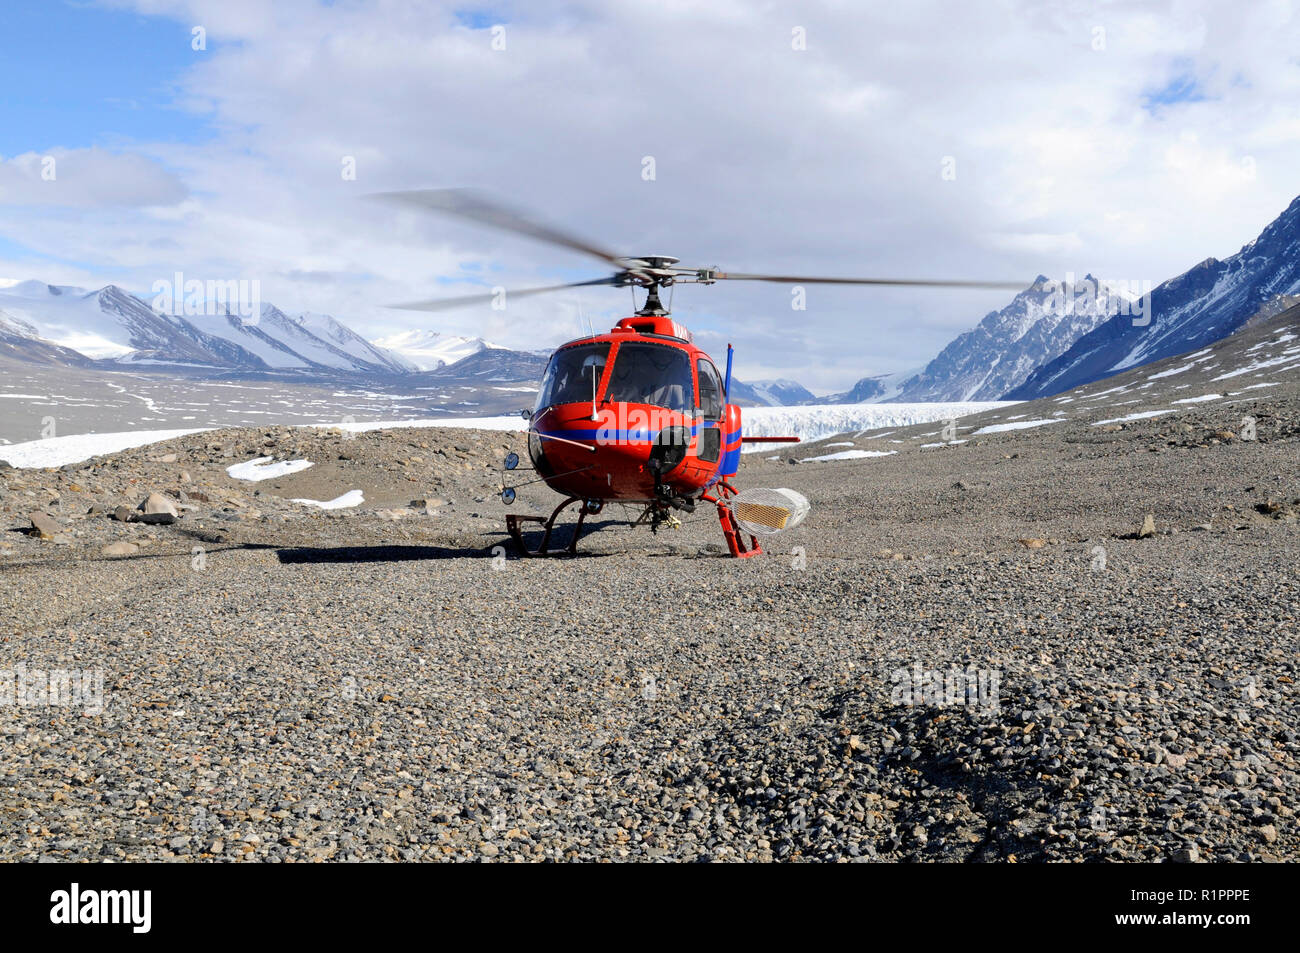 Helicopter landed in Taylor Valley, McMurdo Dry Valleys, Antarctica, picking up scientists for research - Stock Image